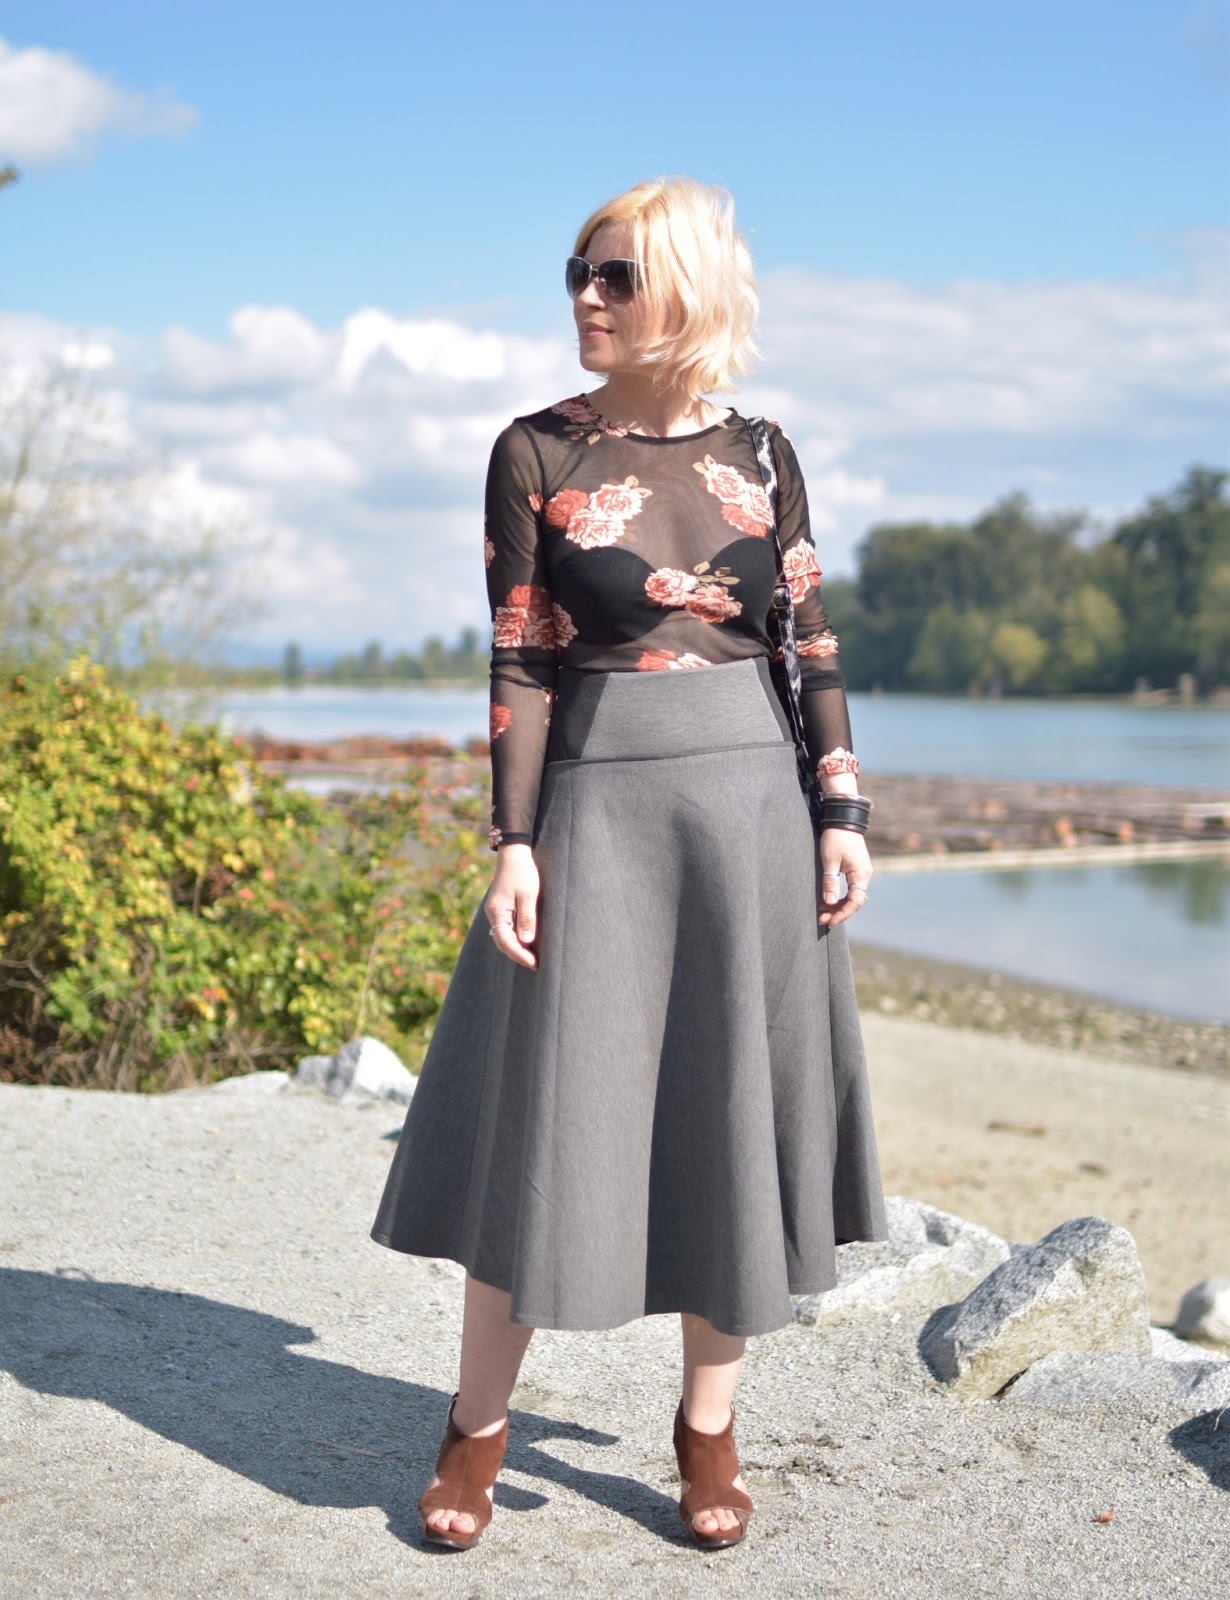 Monika Faulkner styles a flared midi skirt with a sheer floral top and suede platform heels